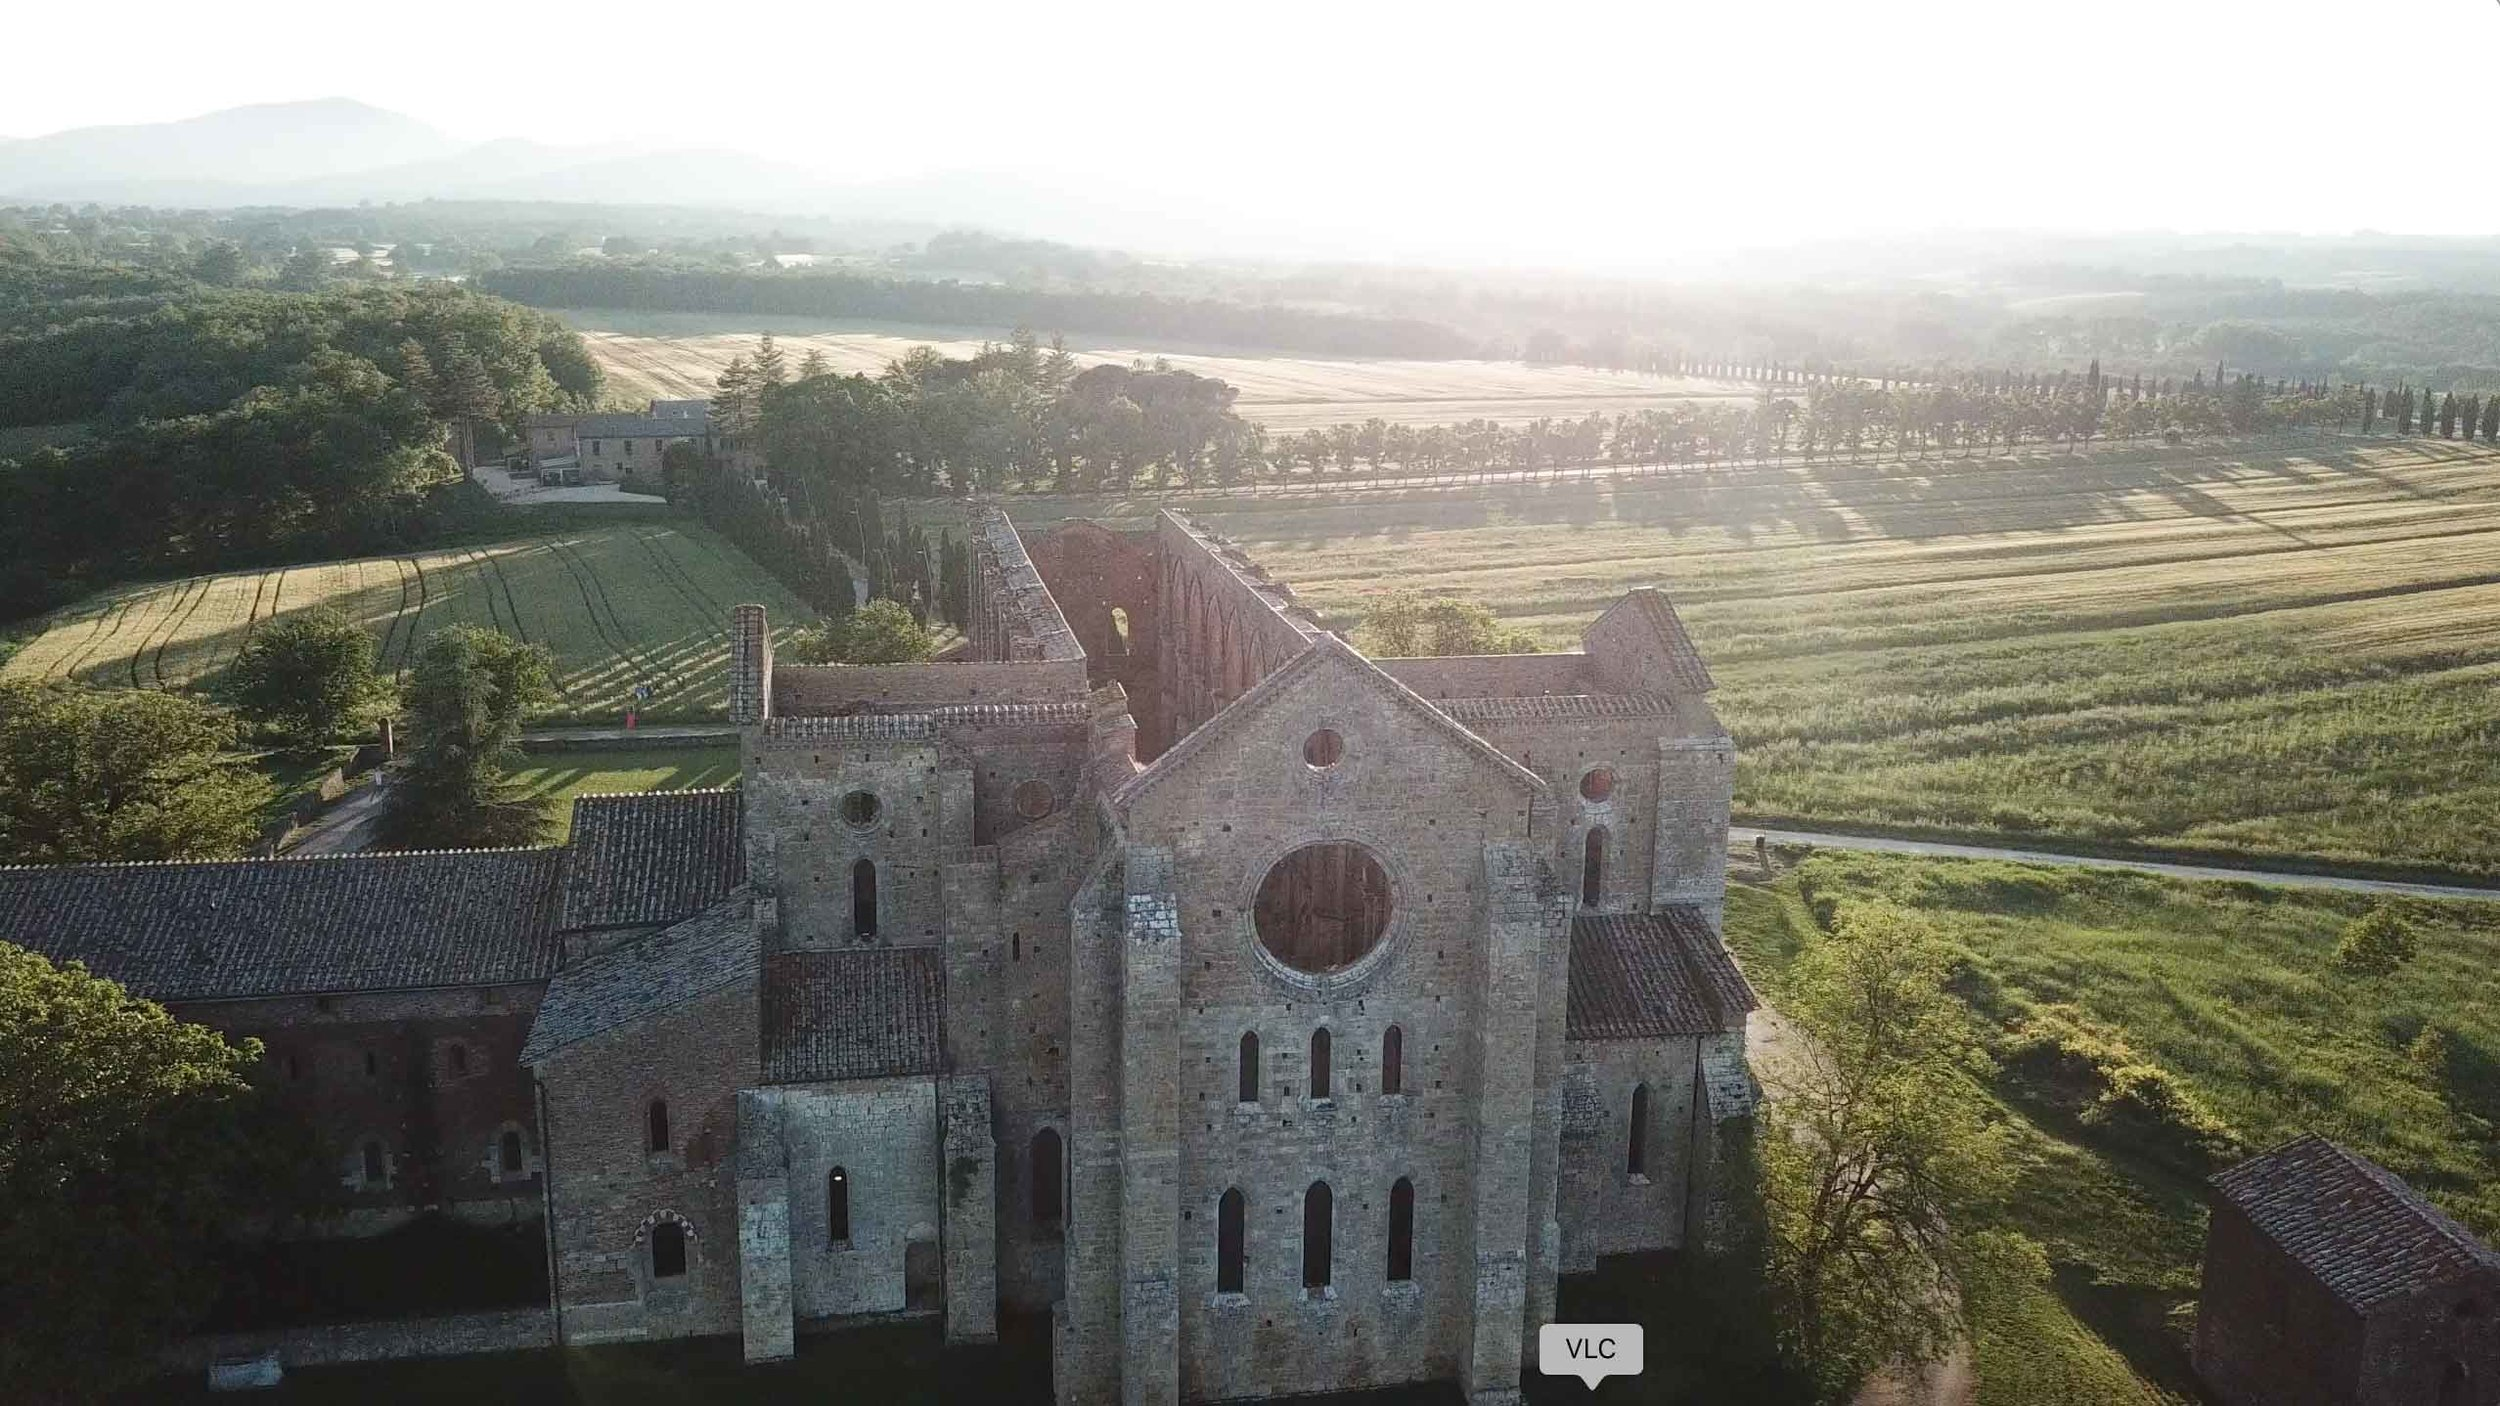 The Abbey of San Galgano from above taken with a DJI Mavic Pro.